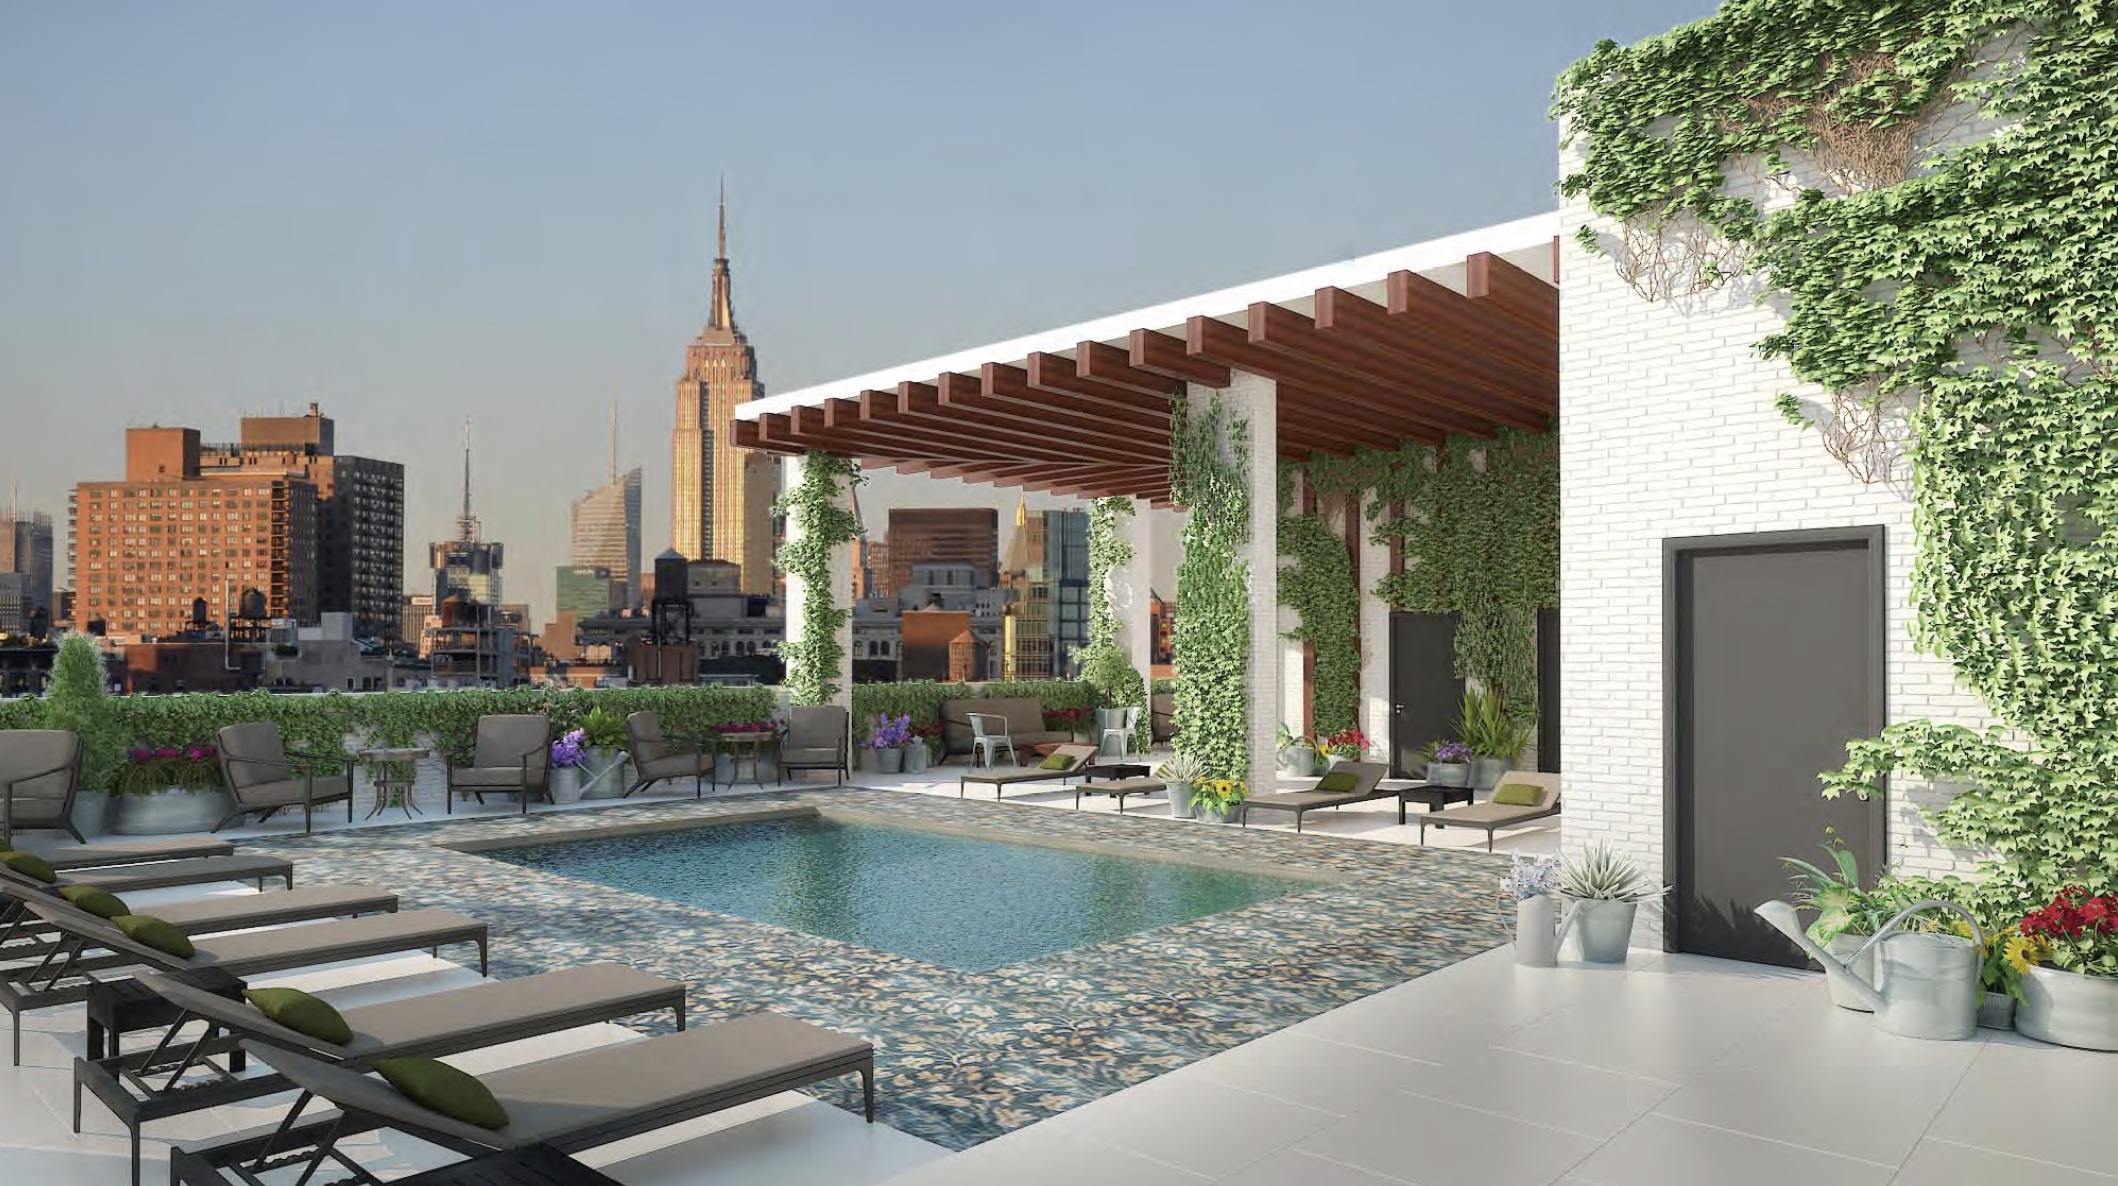 The new-build Renaissance New York Chelsea South Hotel will open next year on the former Antiques Garage Flea Market site